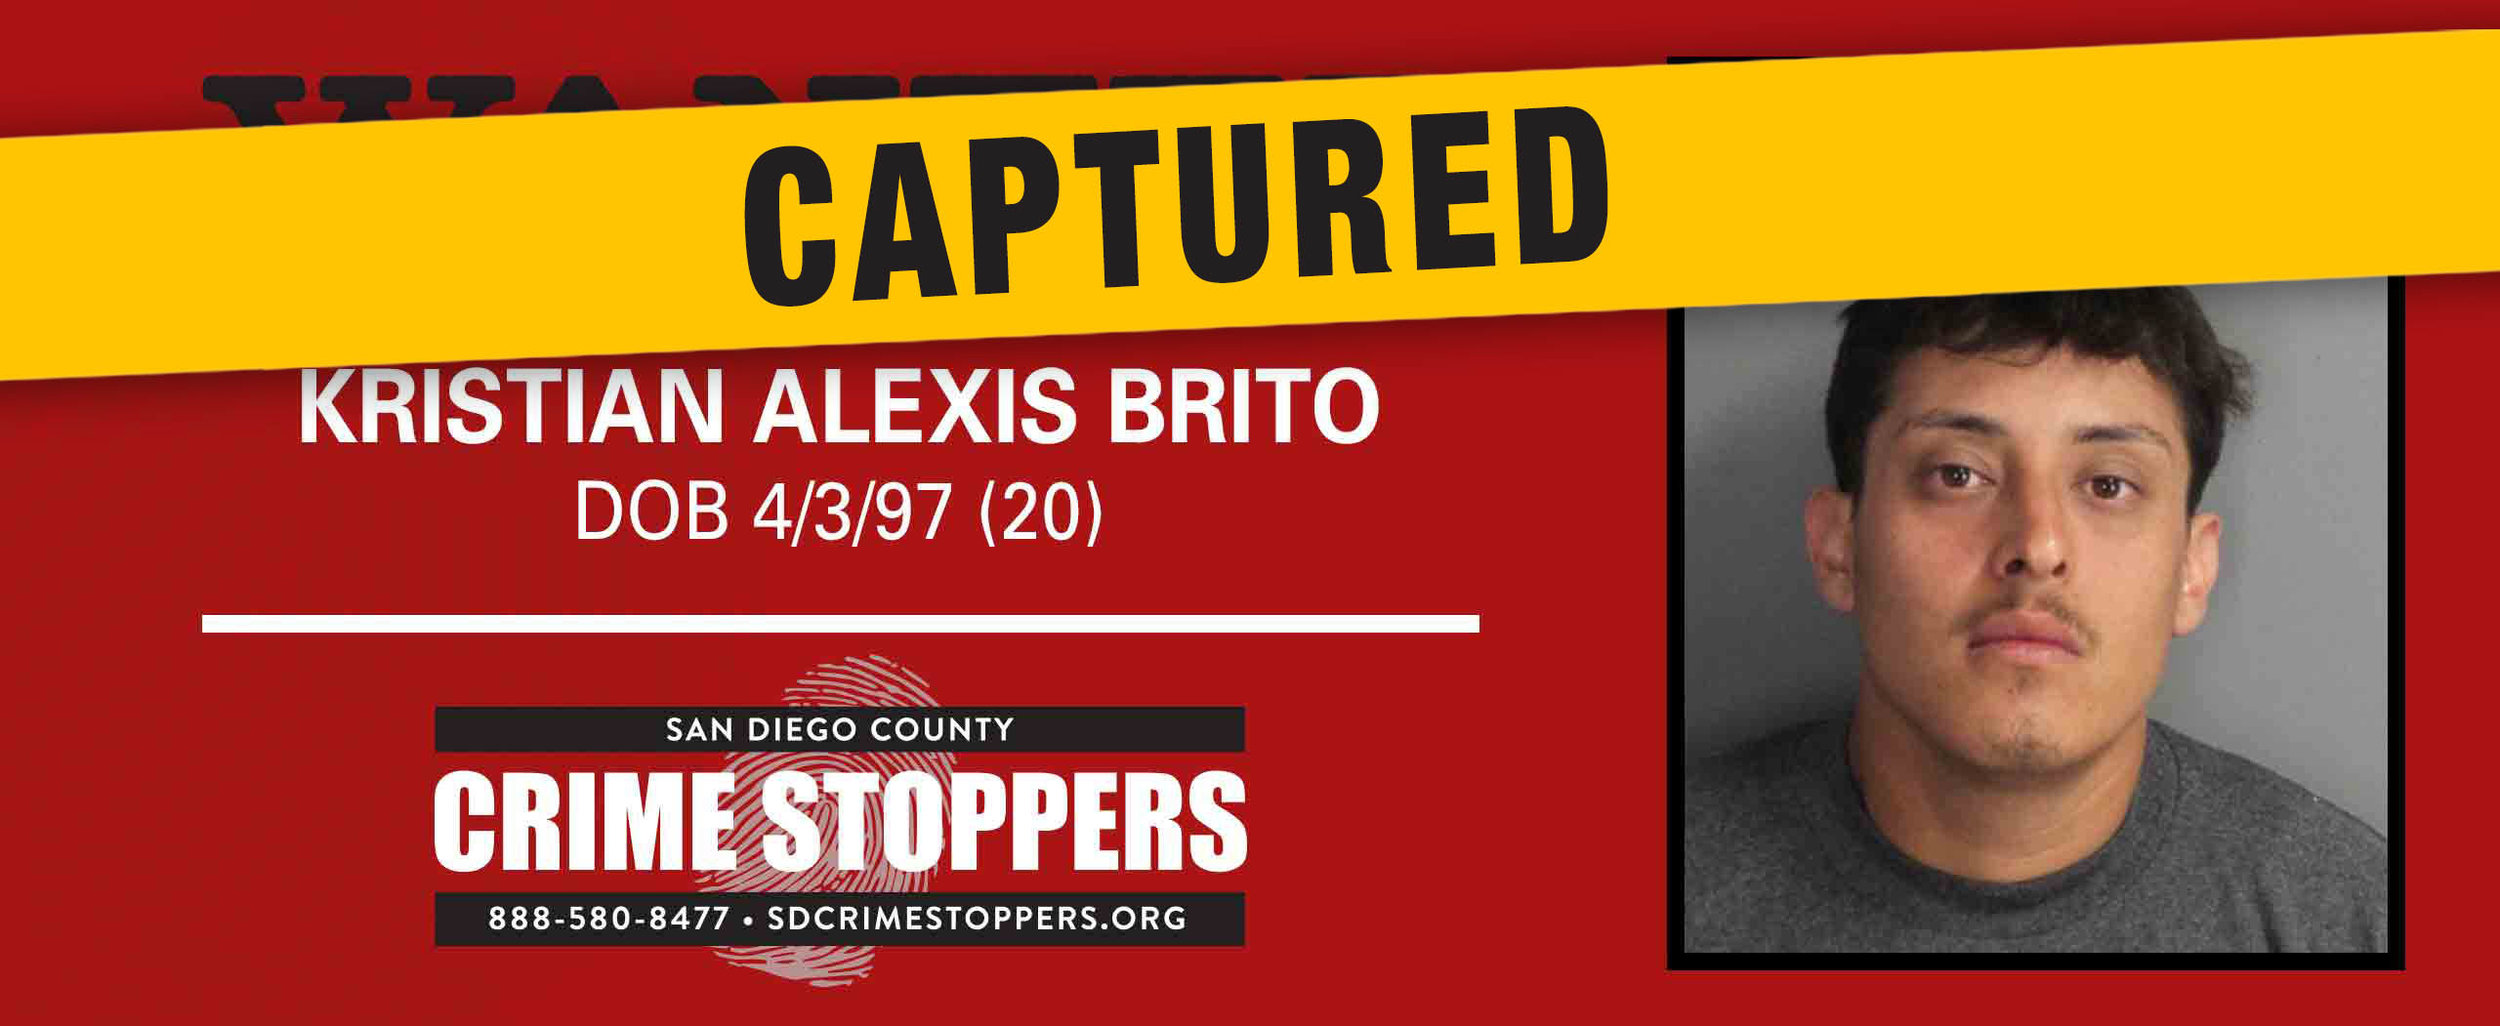 Captured Kristian-Alexis-Brito.jpg